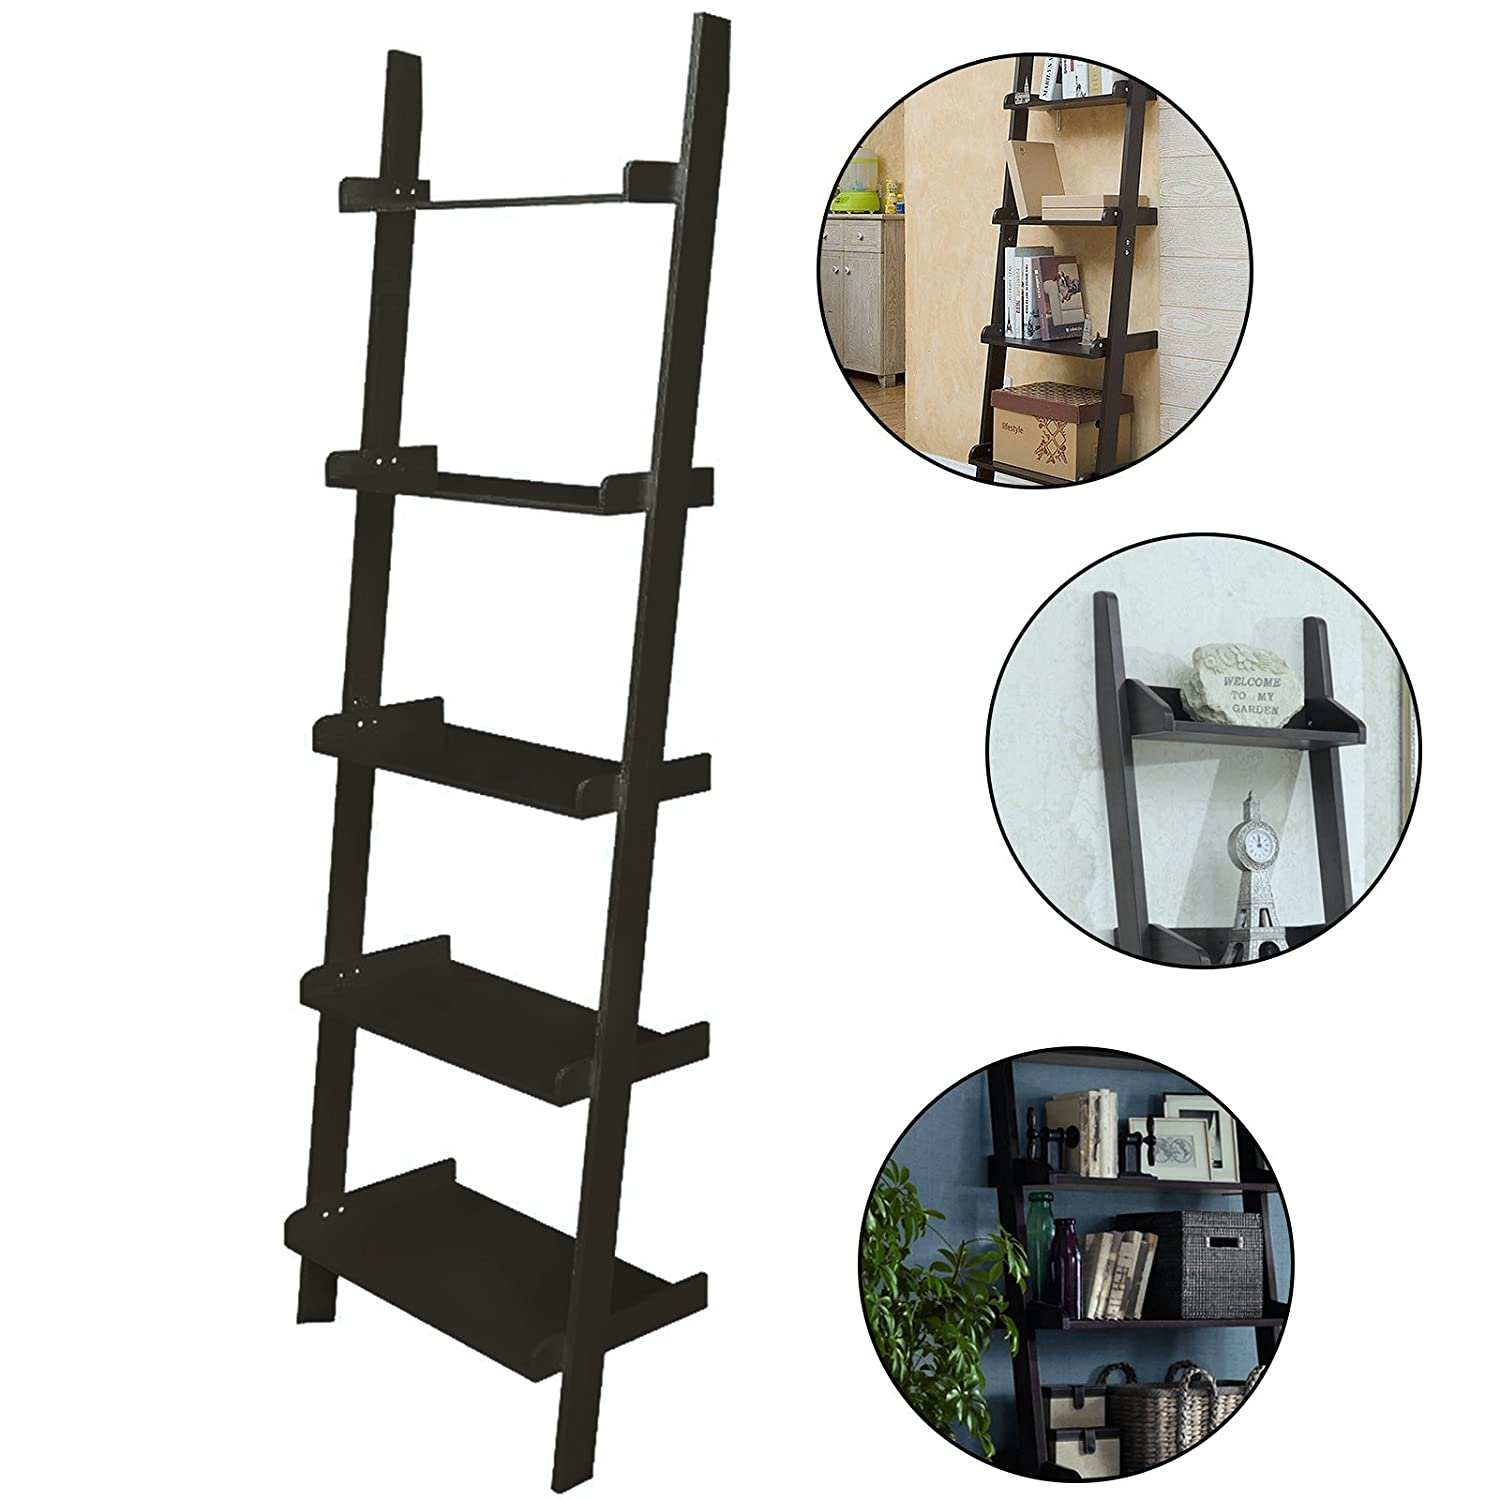 AllRight Ladder Bookshelf Wall Lean 5 Tiers Wooden Display Unit Bookcase Black oem